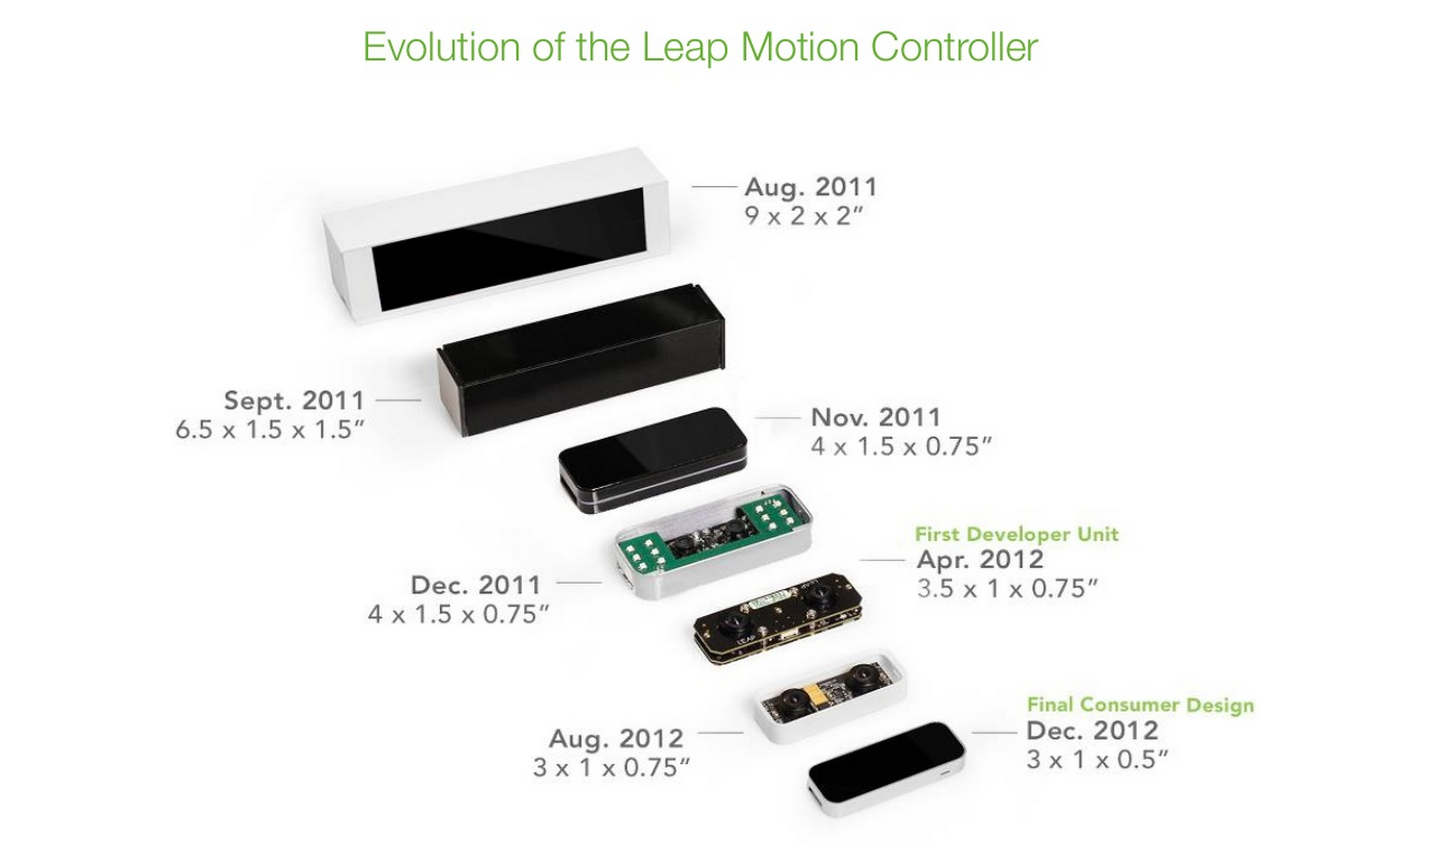 How the Leap Motion controller evolved over time (Source: Leap Motion)